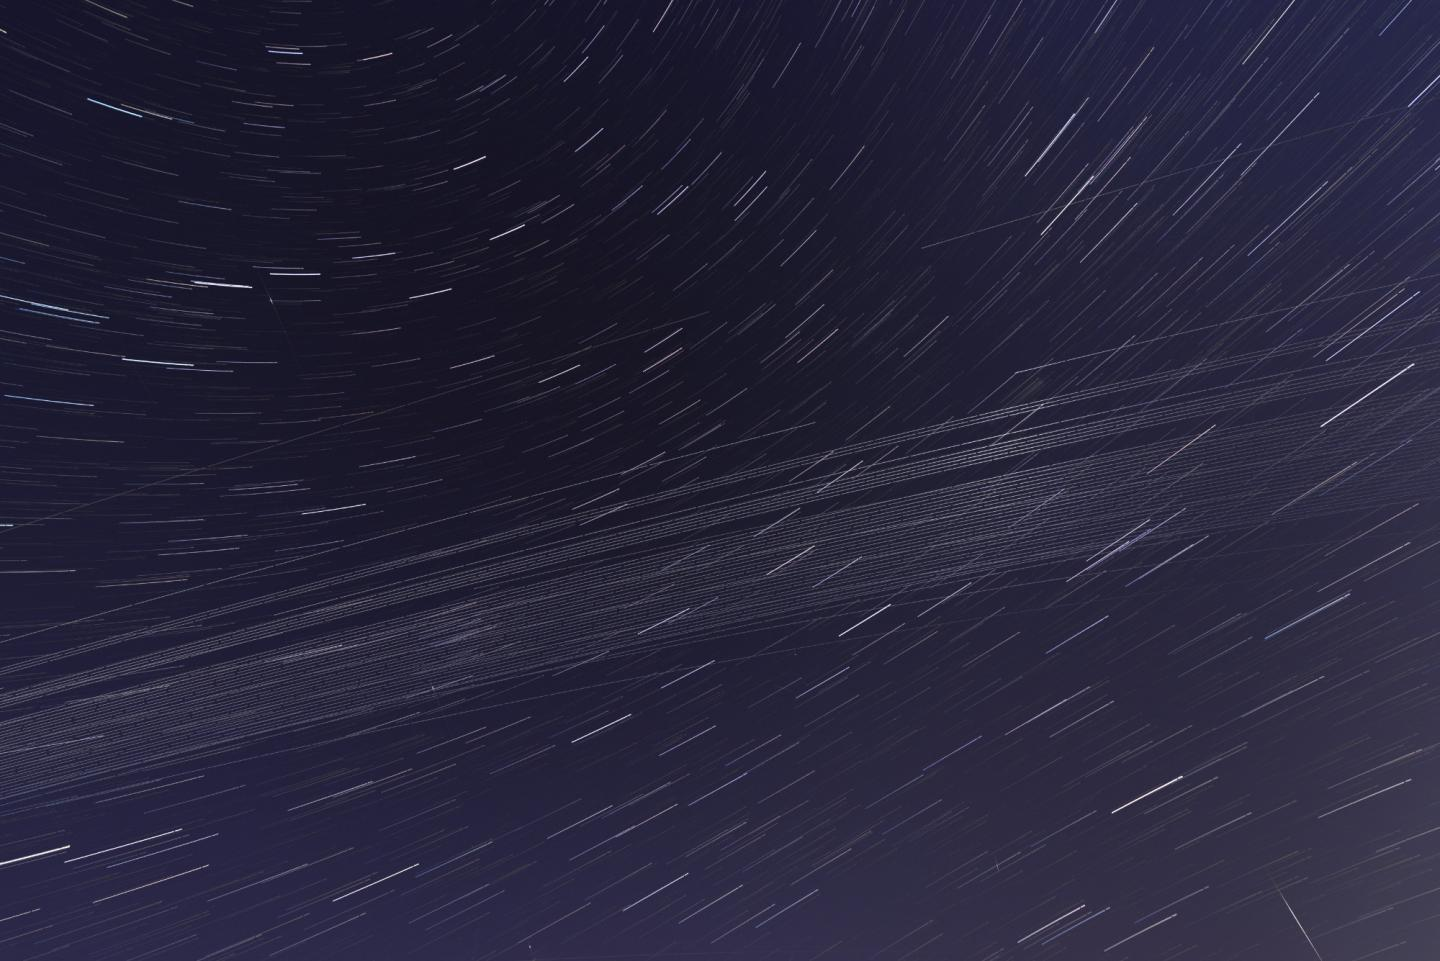 An image of trails caused by the fifth deployment of satellites making up the Starlink constellation